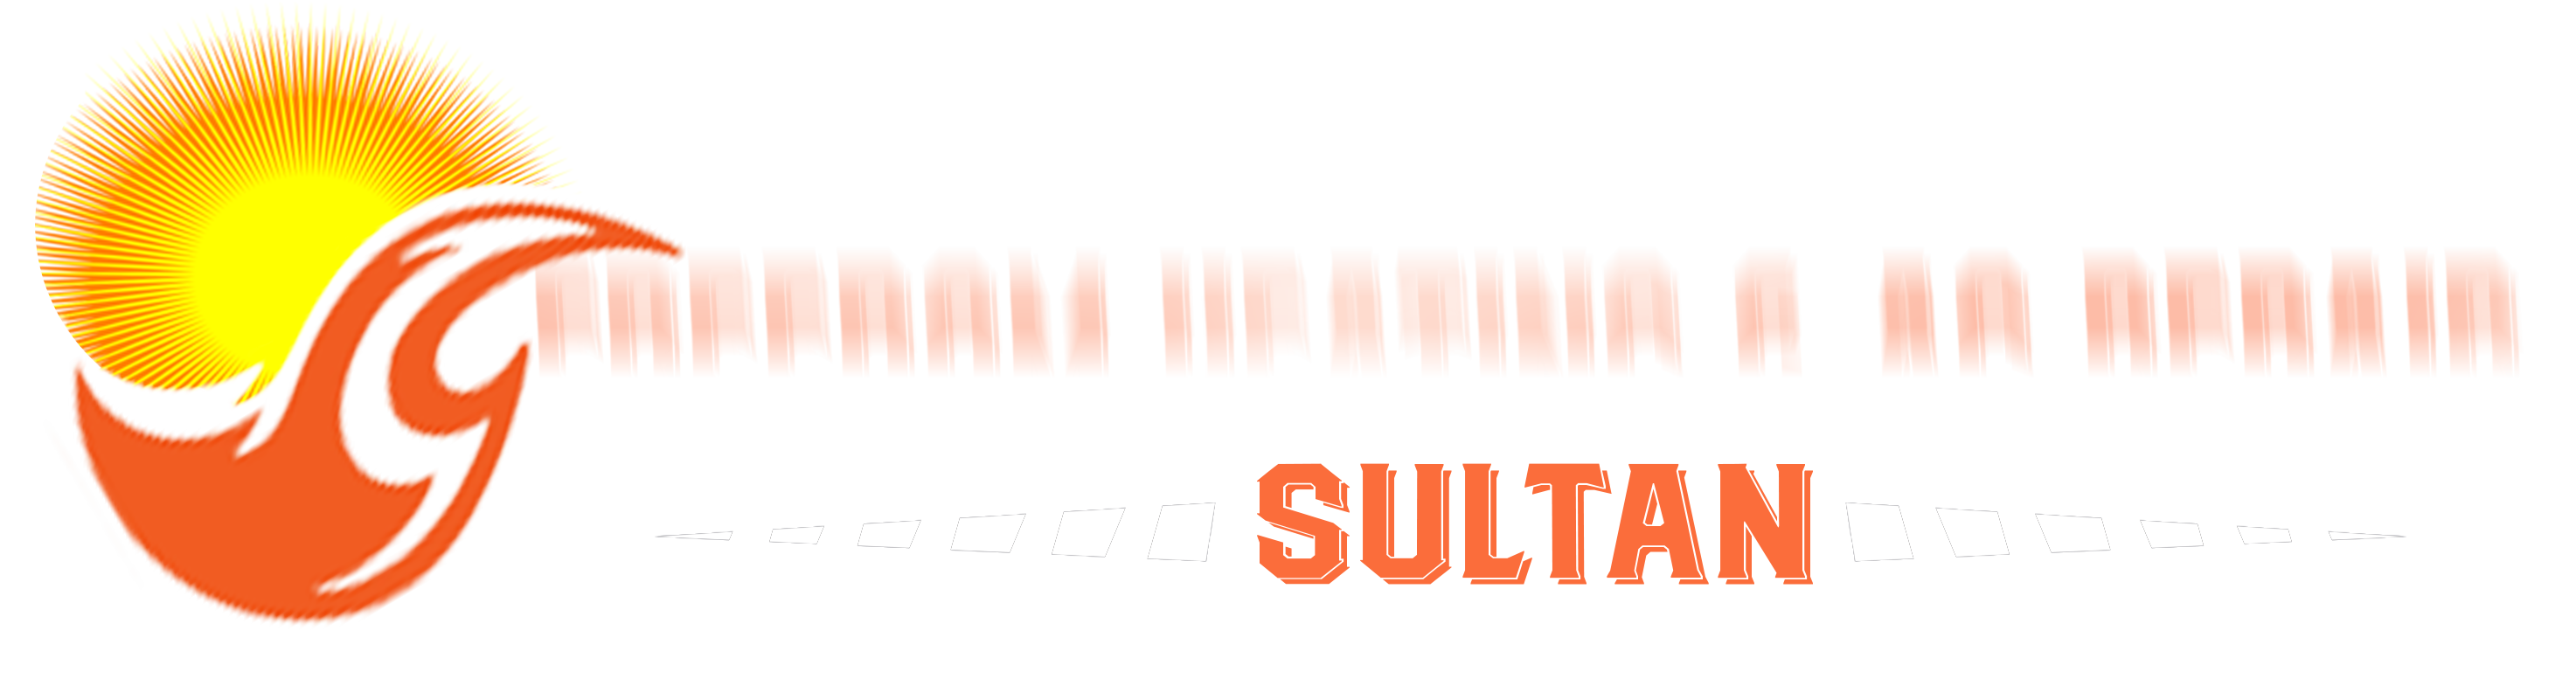 Freedom Heating And Ac Repair Sultan Are Licensed Domestic And